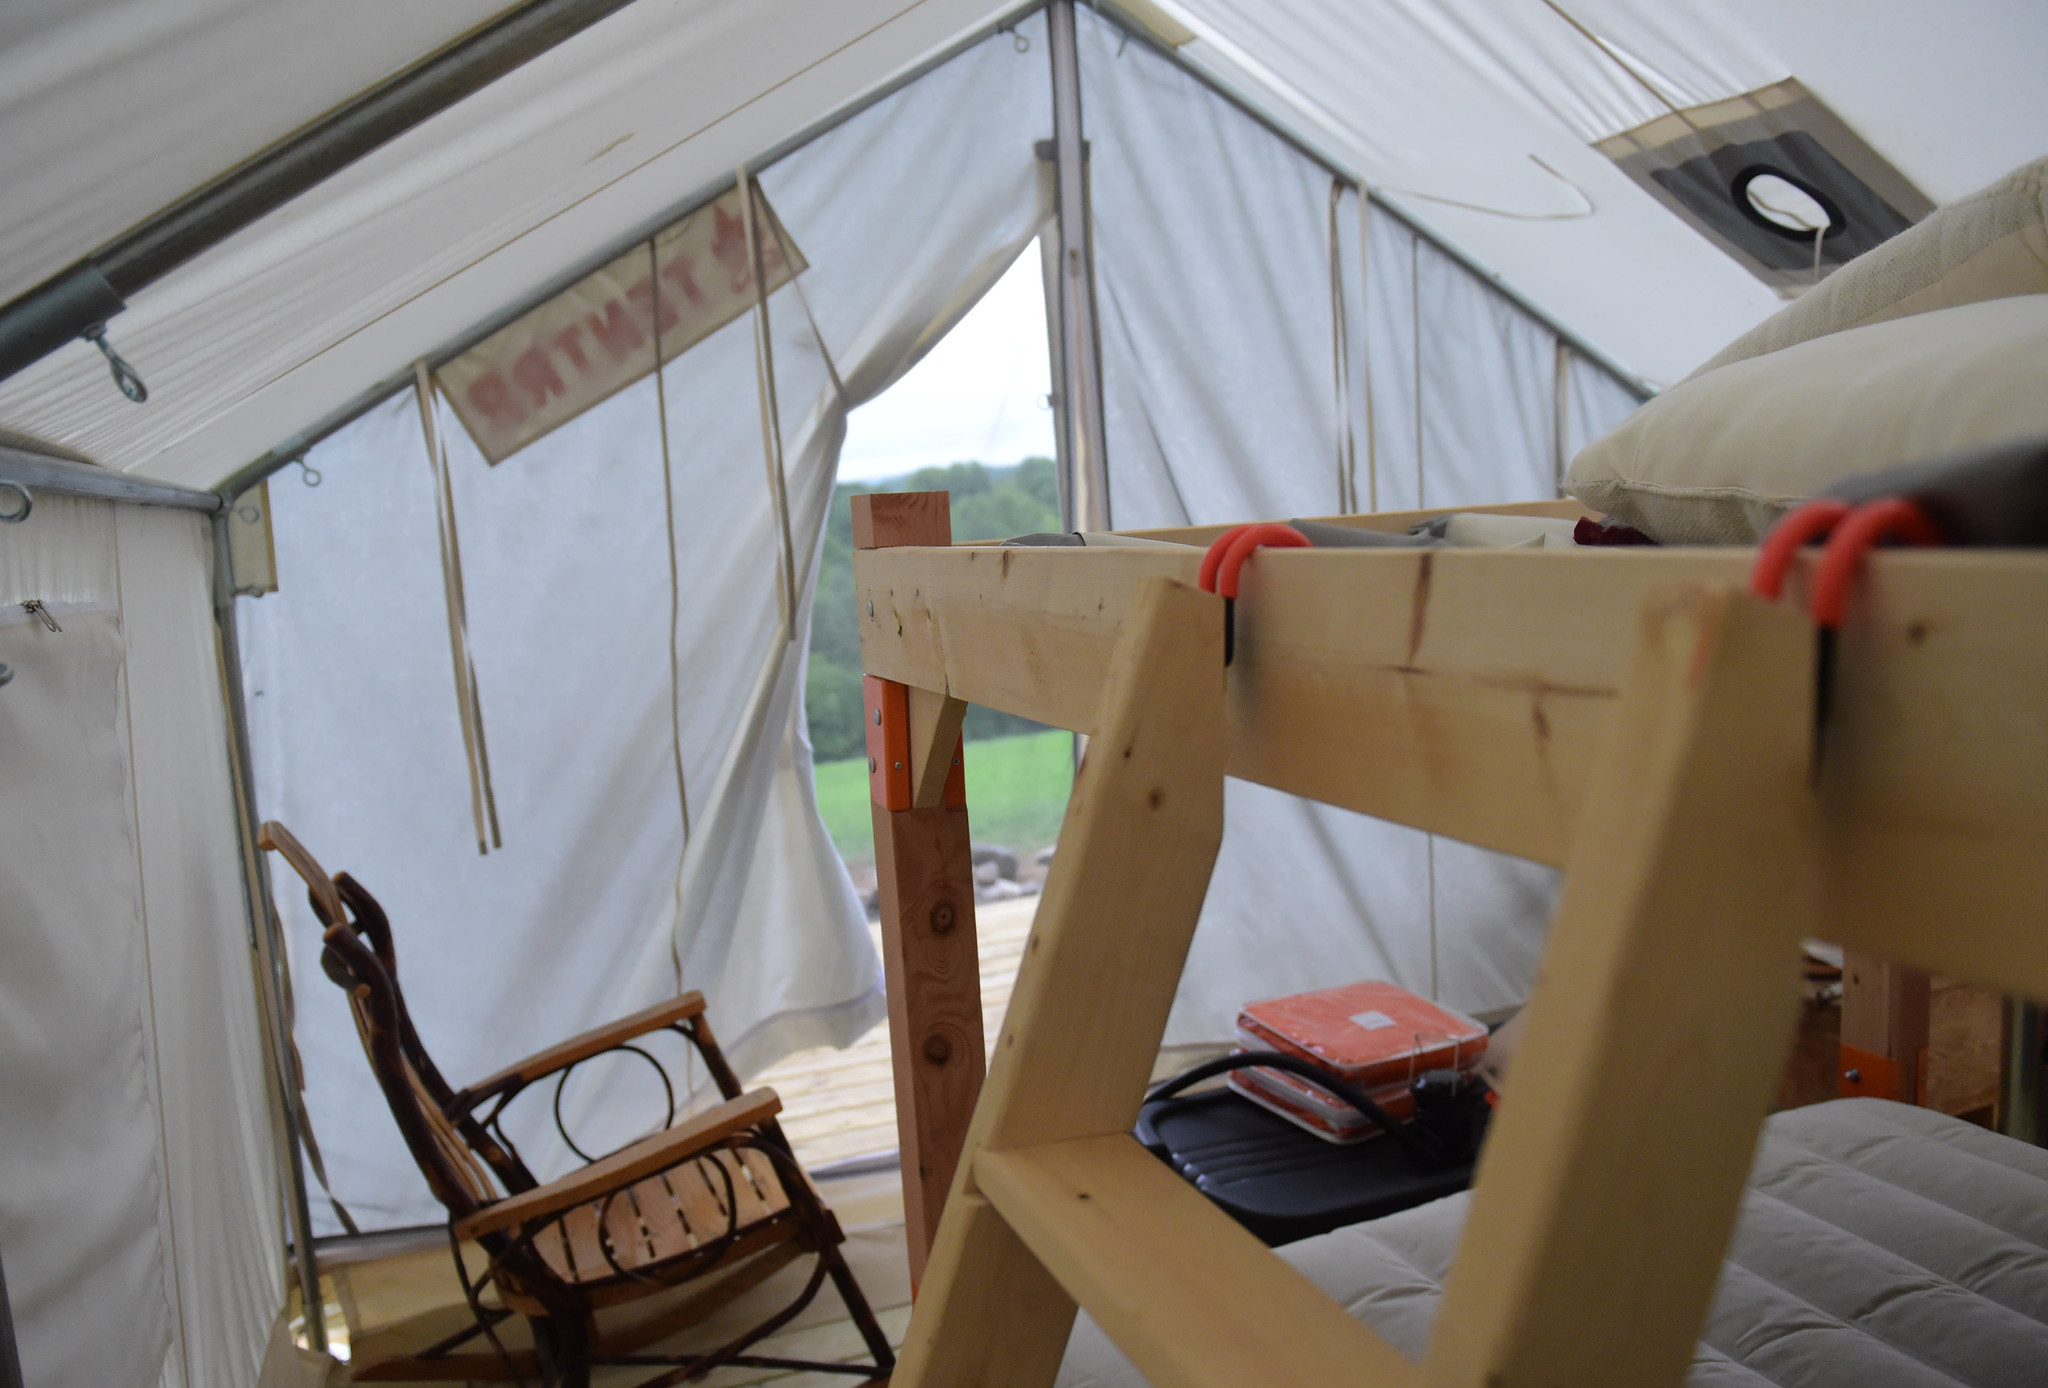 Tentrr The Airbnb Of Camping Comes To Pennsylvania The Morning Call